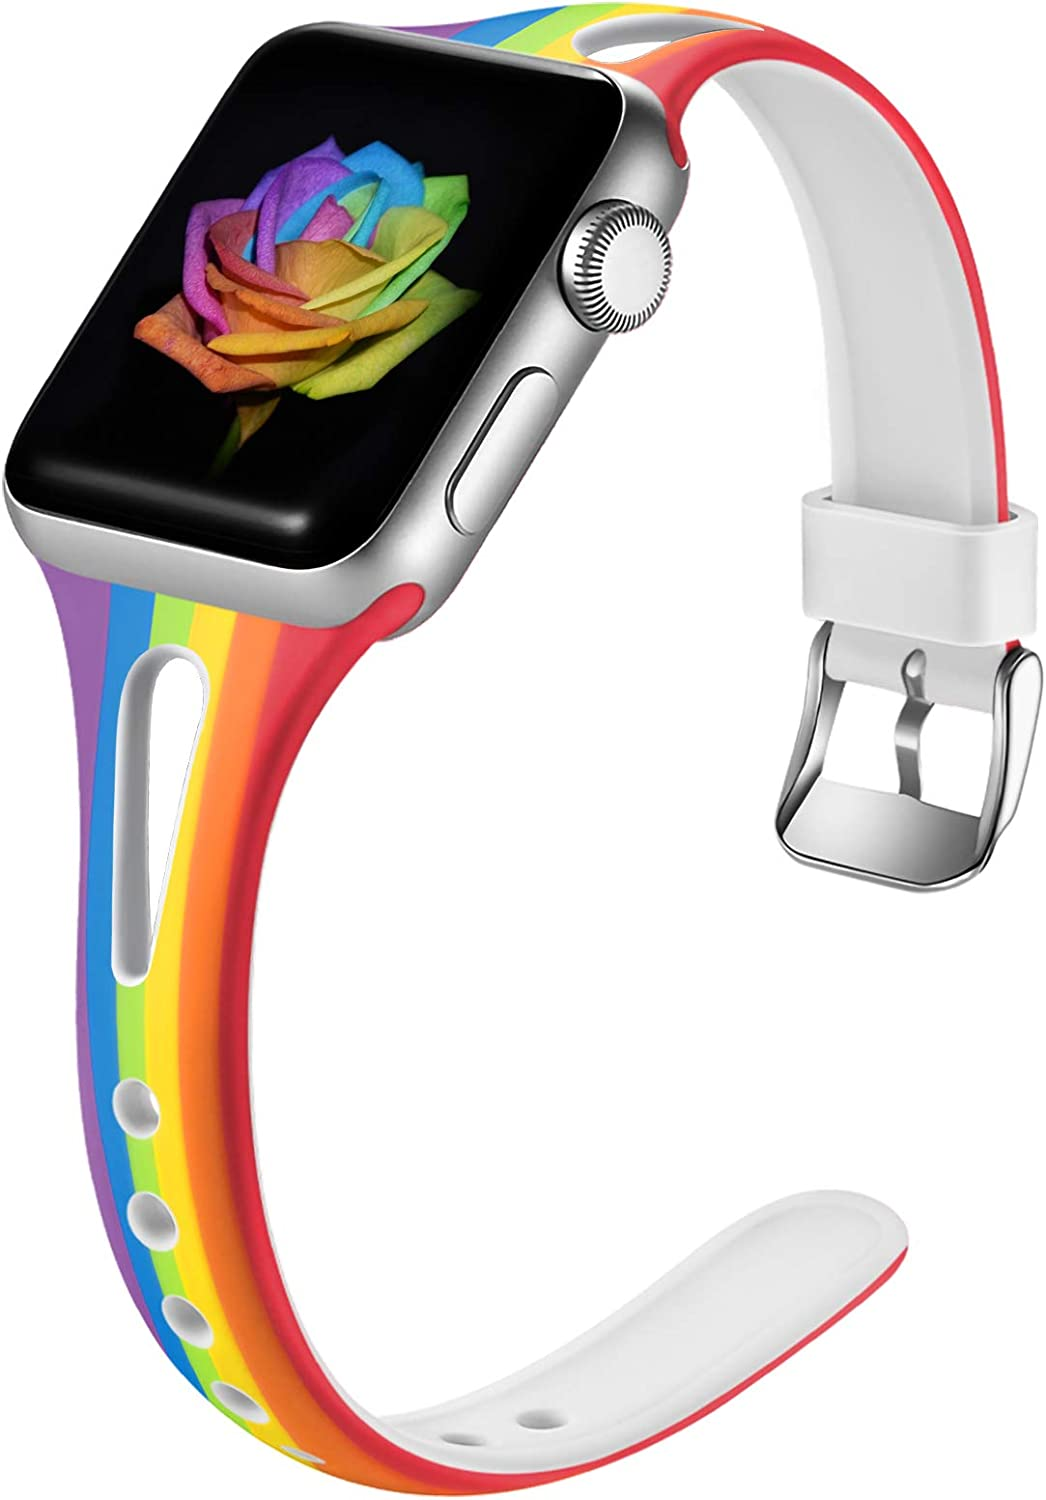 Easuny Rainbow Bands Compatible for Apple Watch 40mm Series 6 Series 5 4 for Women, Soft Cute Slim for Apple Watch SE 38mm Bands,Series 3 2/1, iWatch Silicone Thin Print Wristband S/M, Striped rainbow